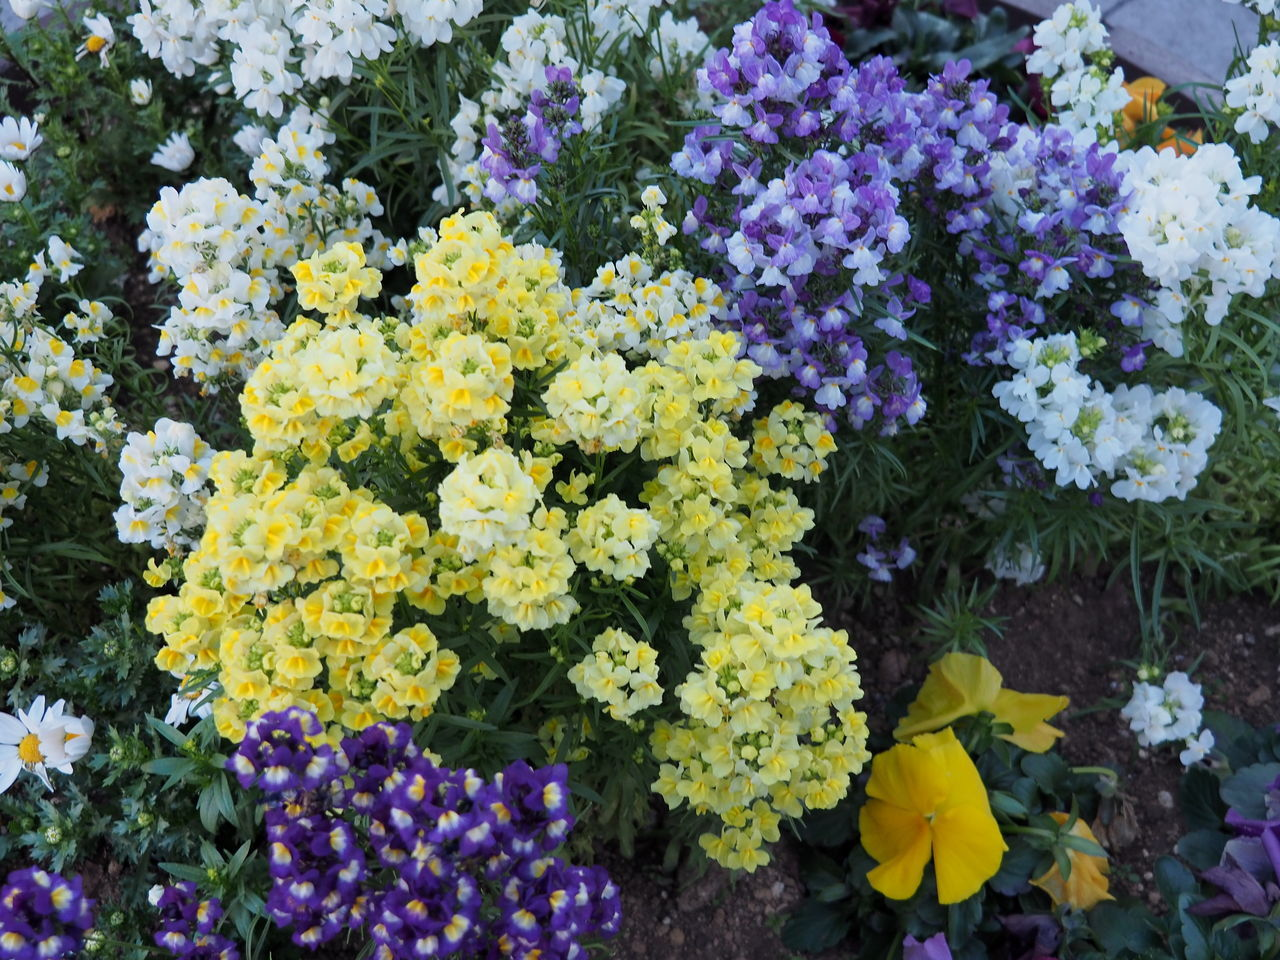 flower, fragility, freshness, growth, yellow, nature, beauty in nature, no people, petal, purple, outdoors, flower head, plant, multi colored, day, blooming, close-up